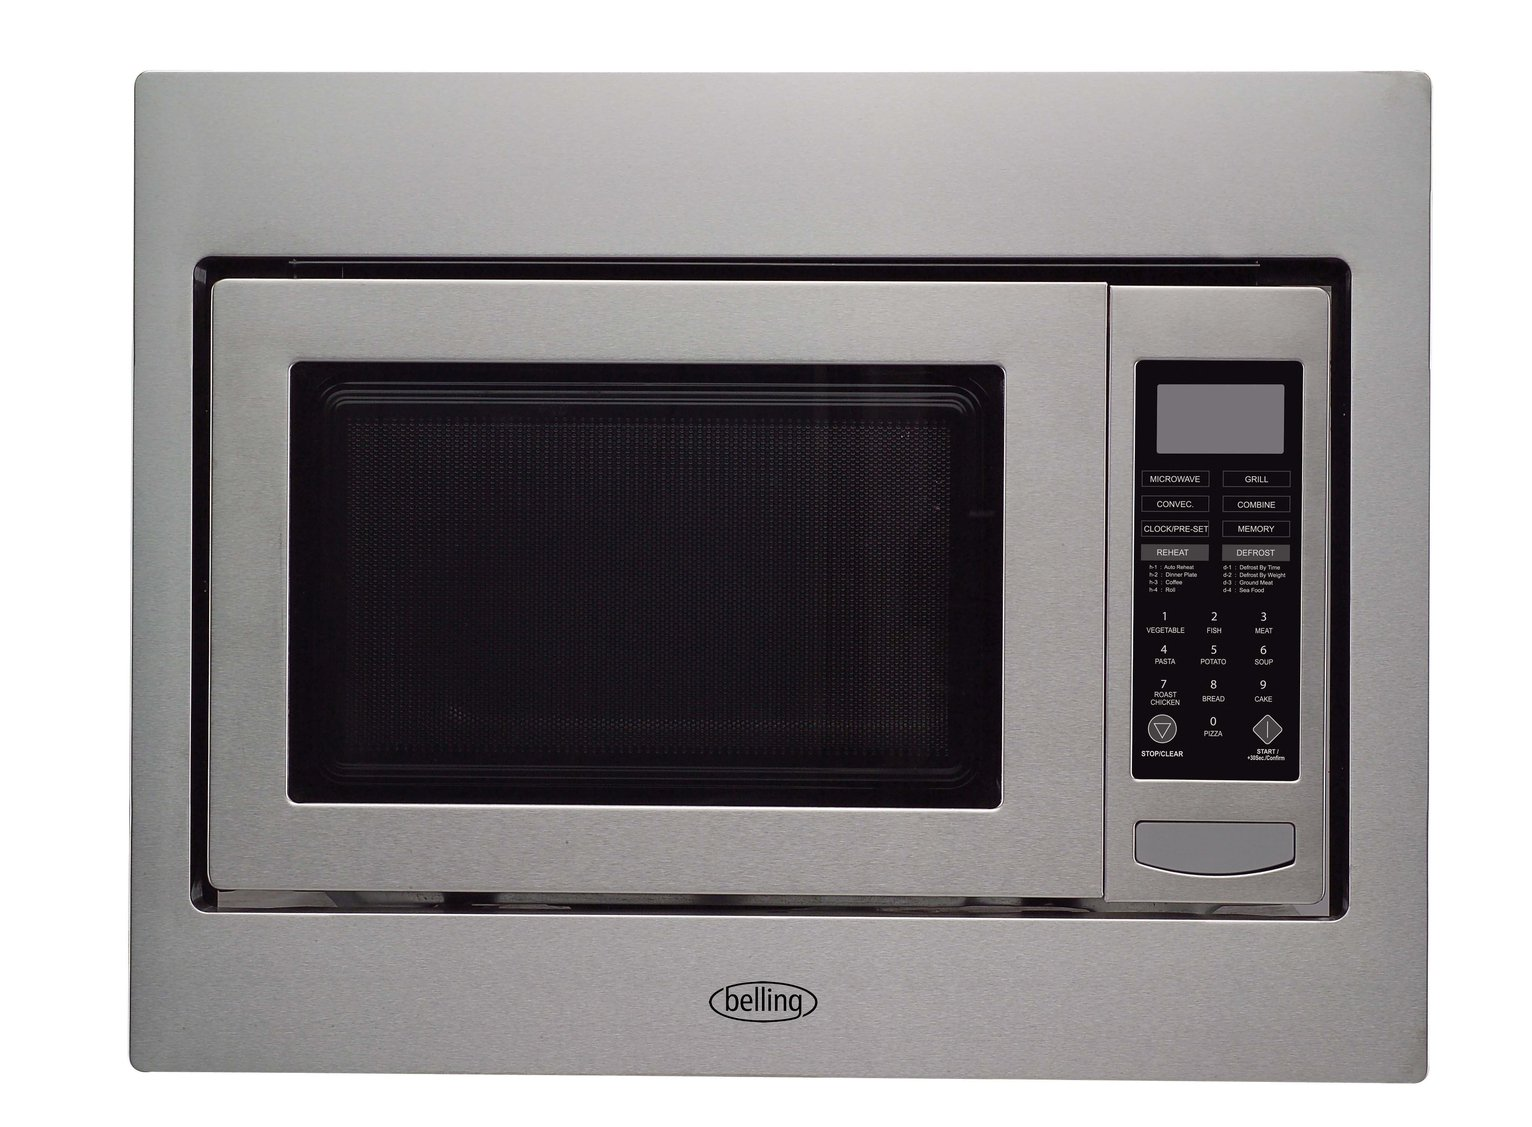 Belling BIMW60 Integrated Microwave - Stainless Steel